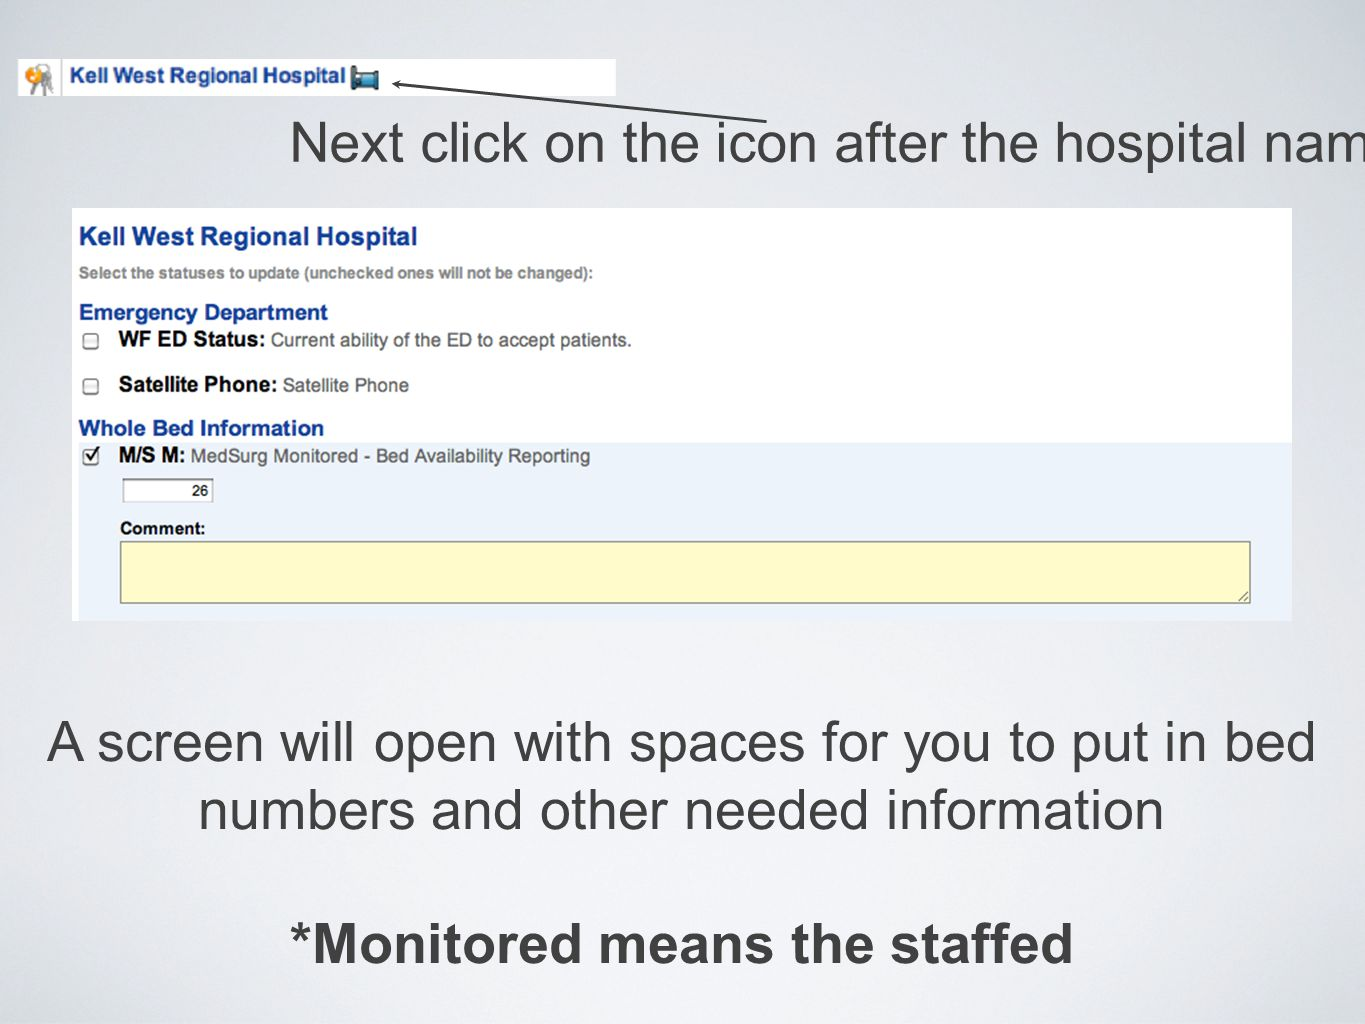 Next click on the icon after the hospital name A screen will open with spaces for you to put in bed numbers and other needed information *Monitored means the staffed